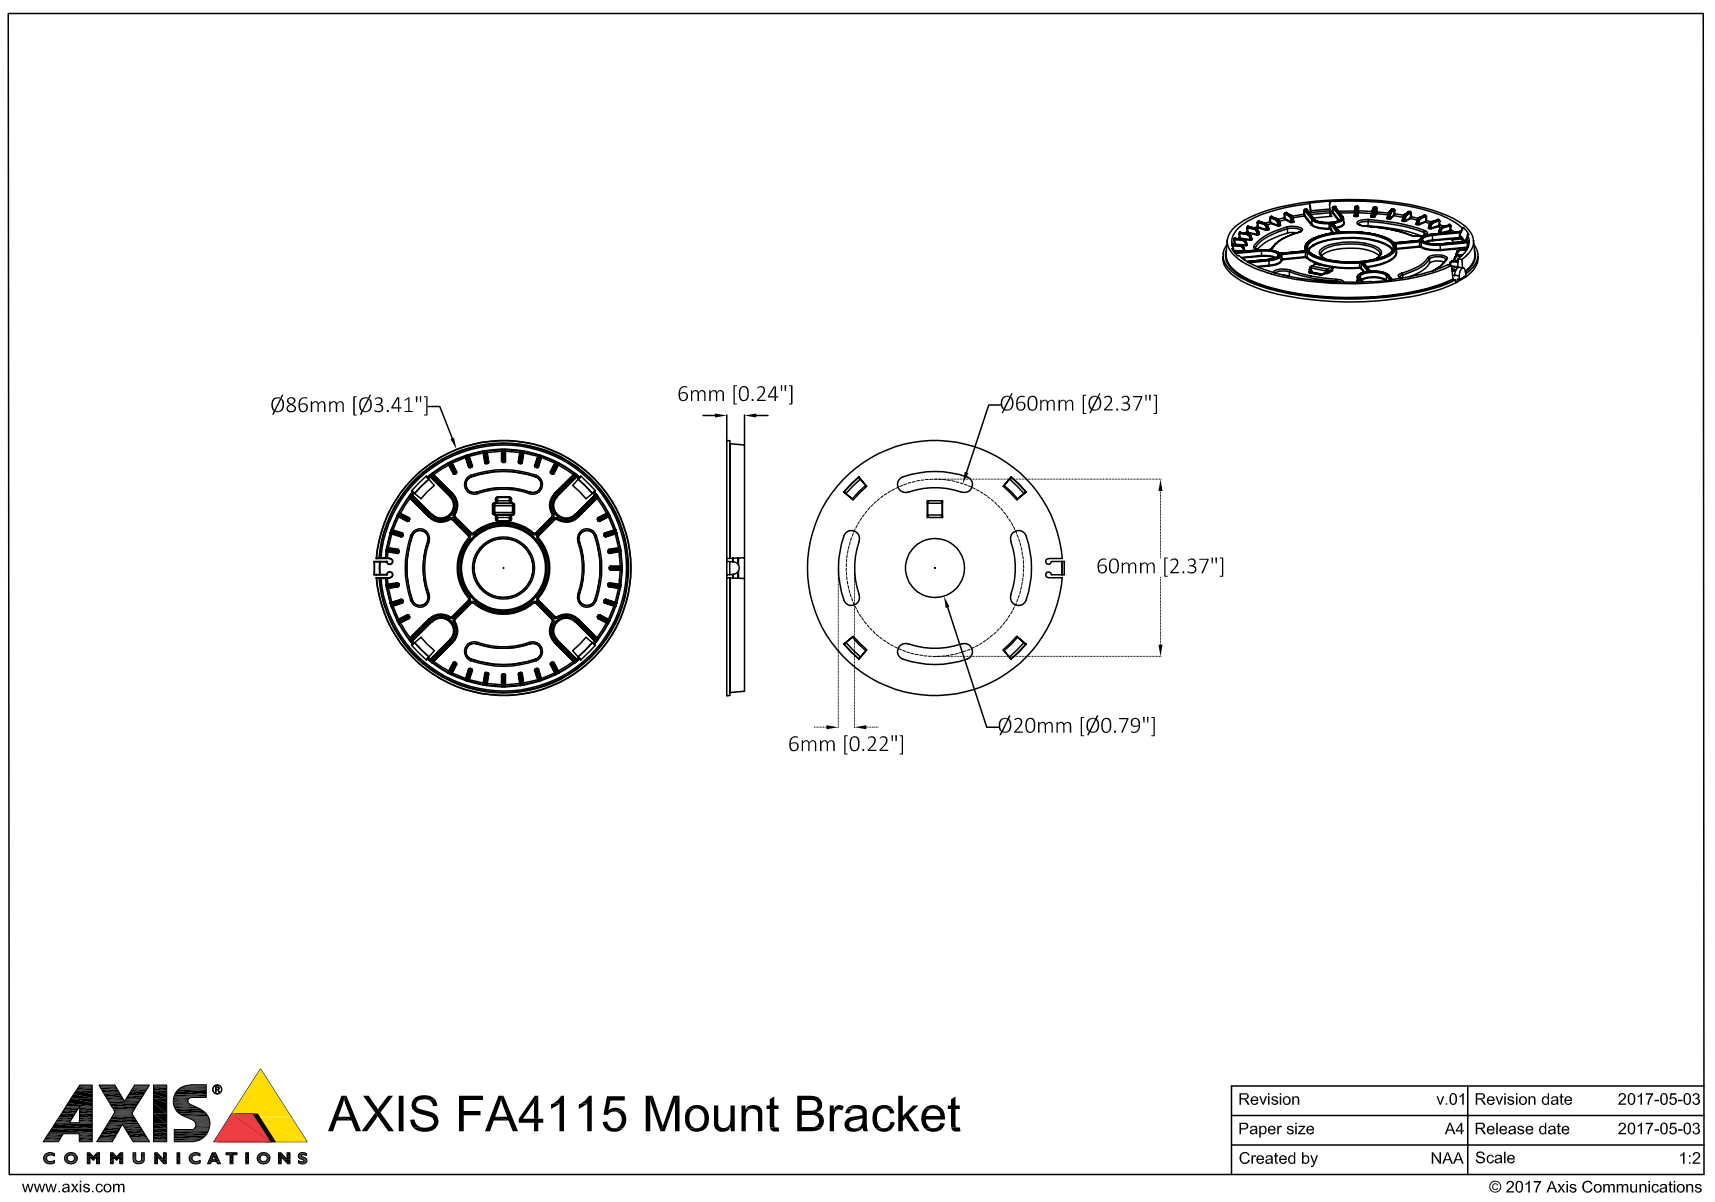 AXIS FA4115 Bracket Dimensions